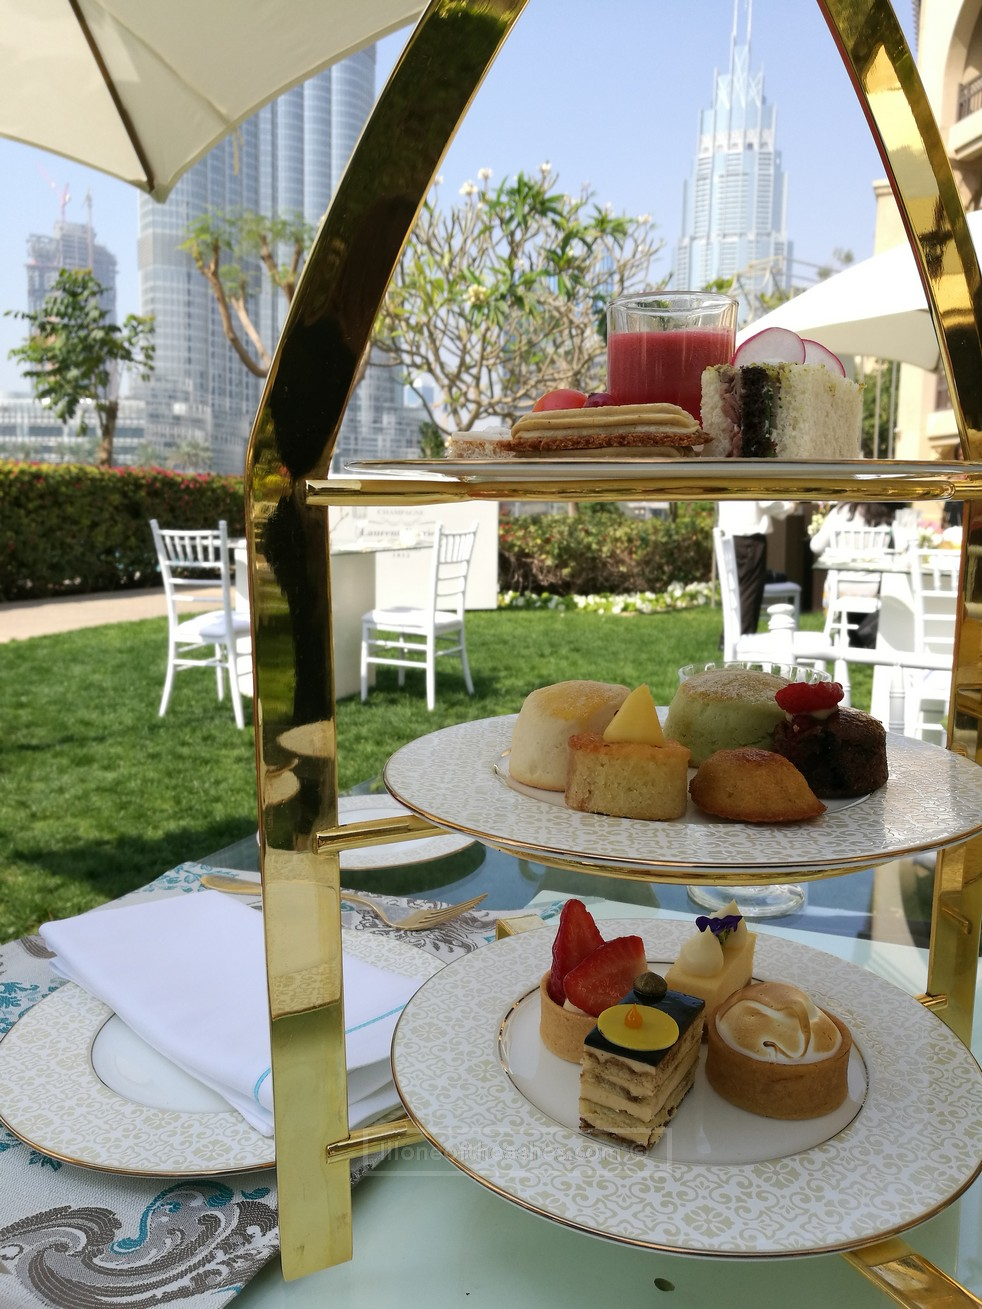 BVLGARI Afternoon Tea at Lakeside Garden @ The Palace Downtown